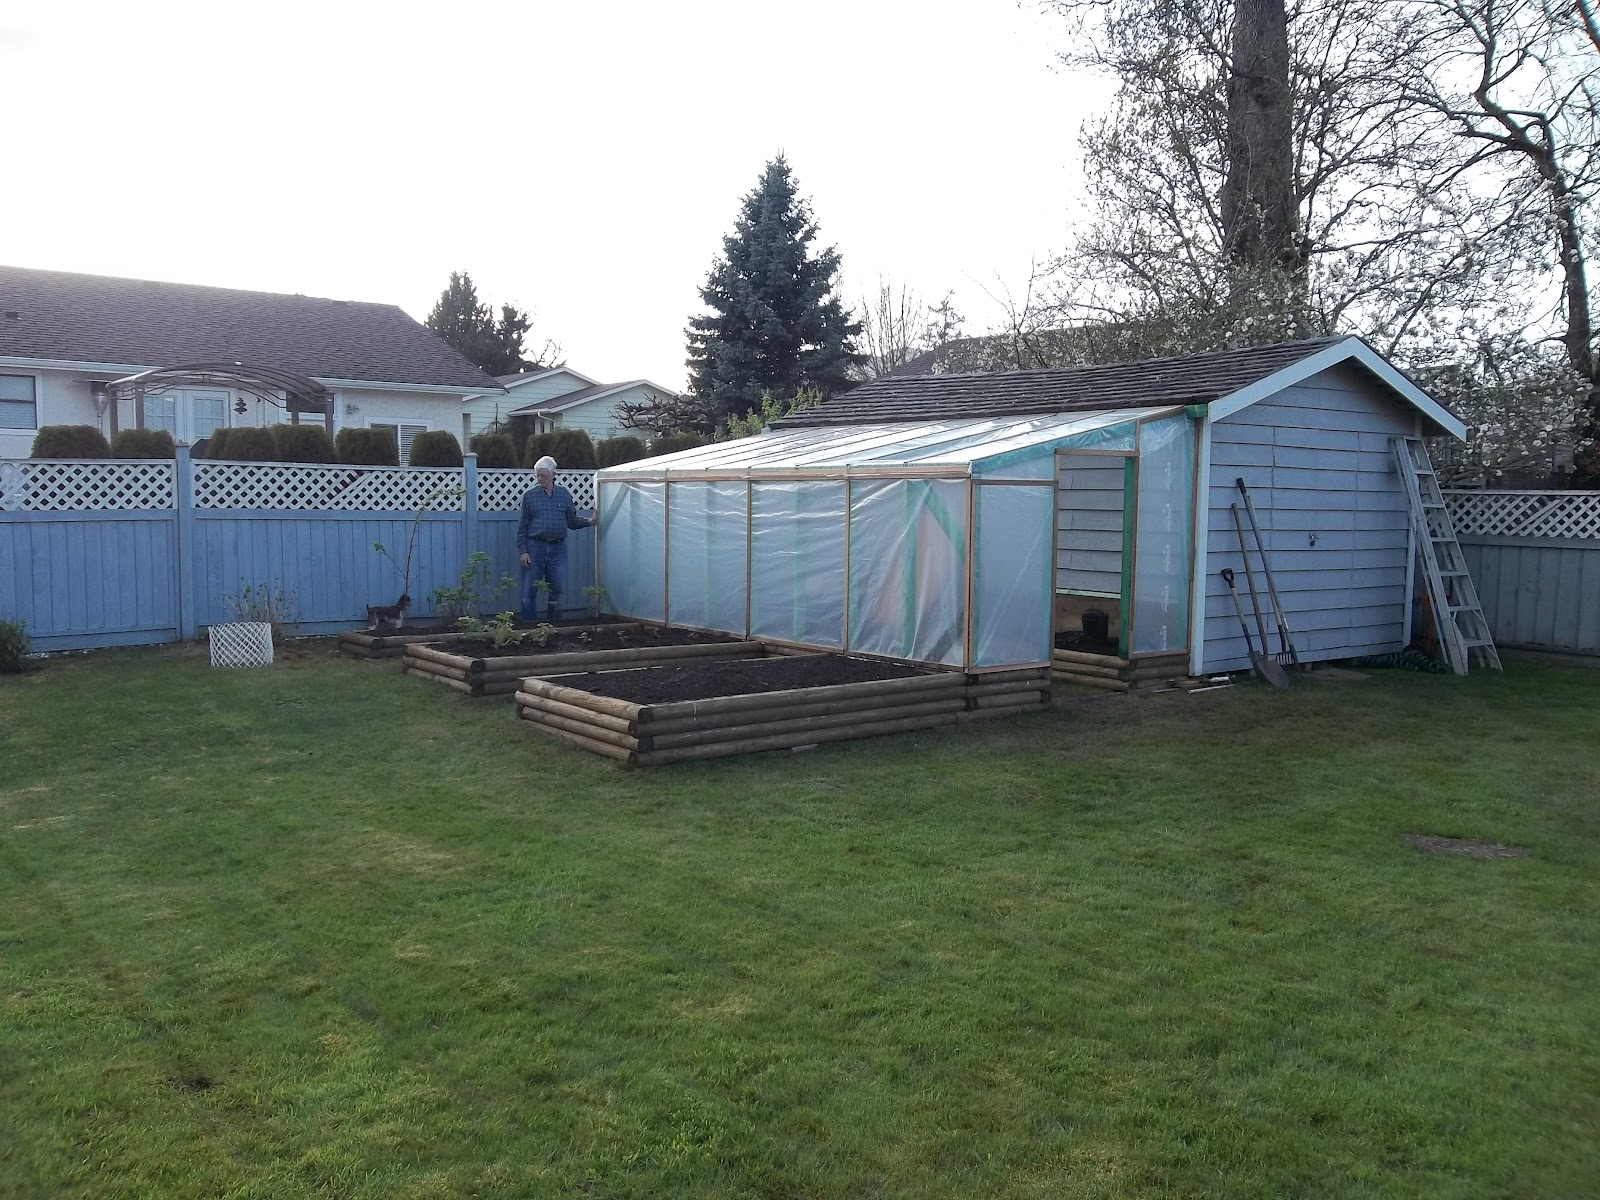 gardening with gramps building a greenhouse without going broke